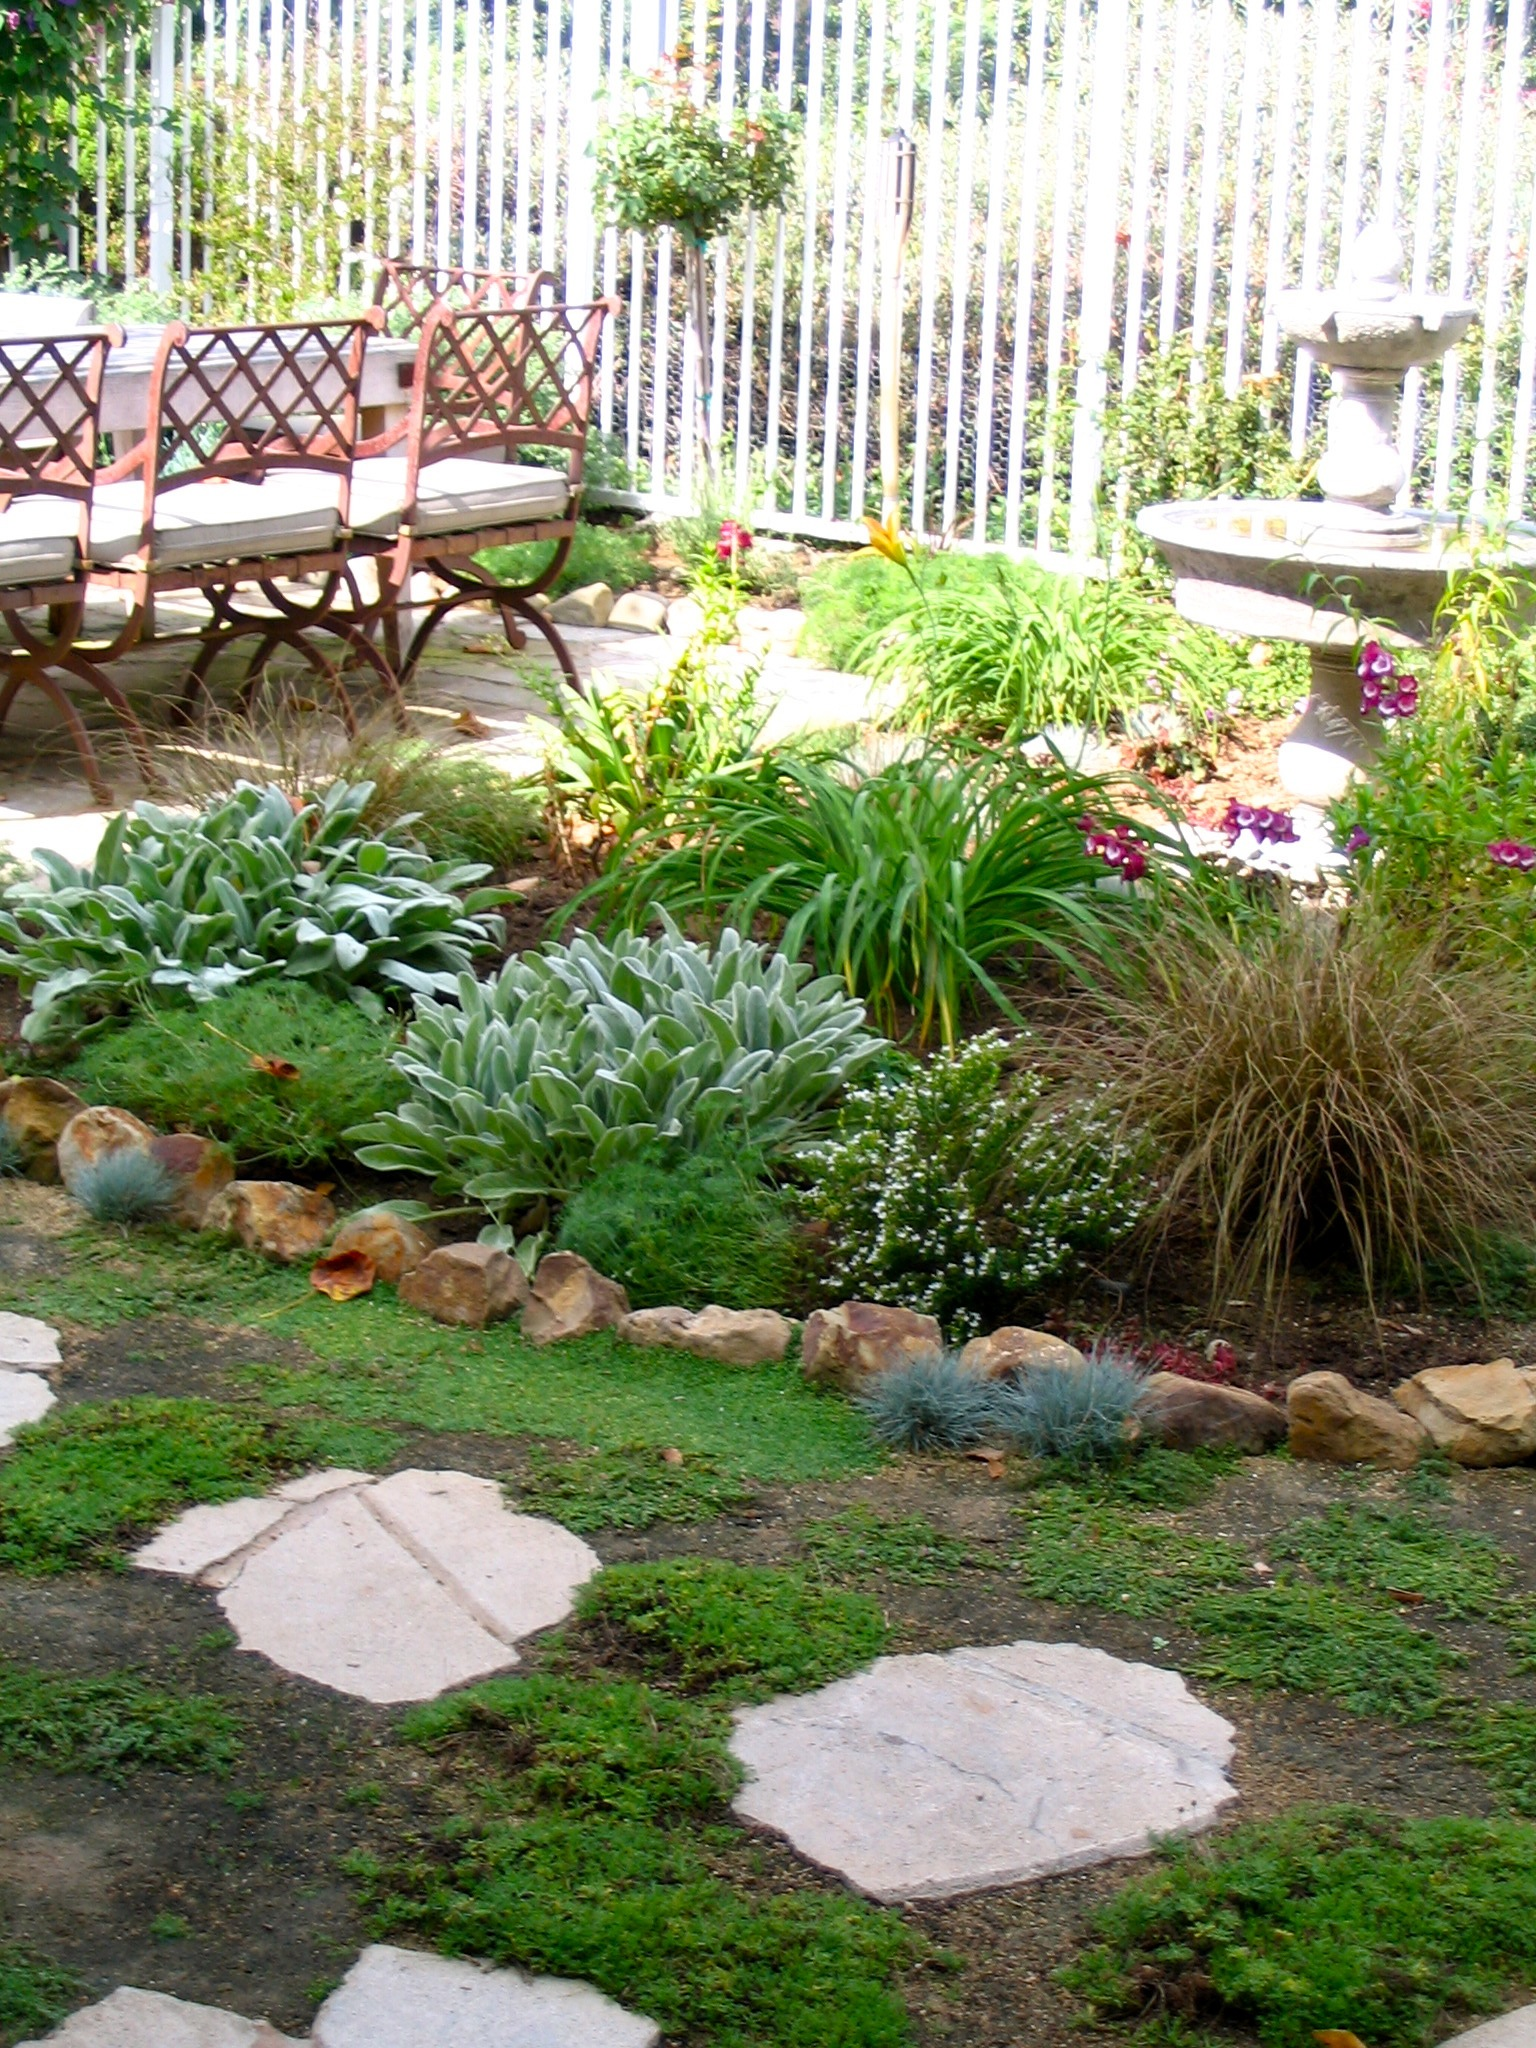 Fountain Garden With Low Water Plants | Eden Makers Blog By Shirley Bovshow